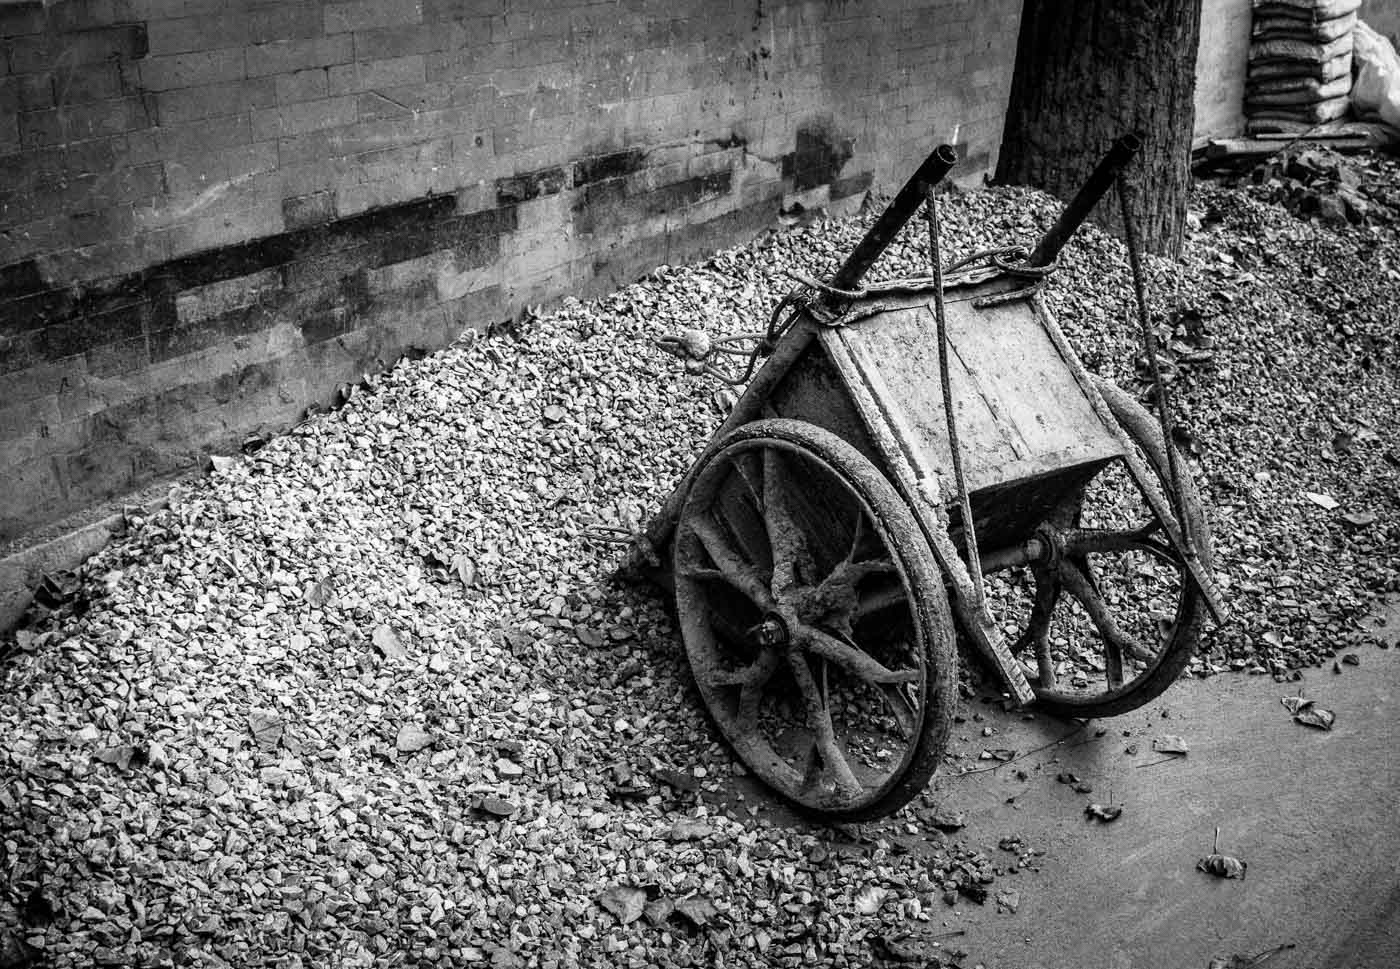 A cart by the side of the road in Beijing, China. Photo taken from a taxi taking me back to the hotel after a work event and required no tripods, no heavy lenses and could have been take with a compact camera. Details in unfamiliar sceneries make for refreshing photography, give it a try!